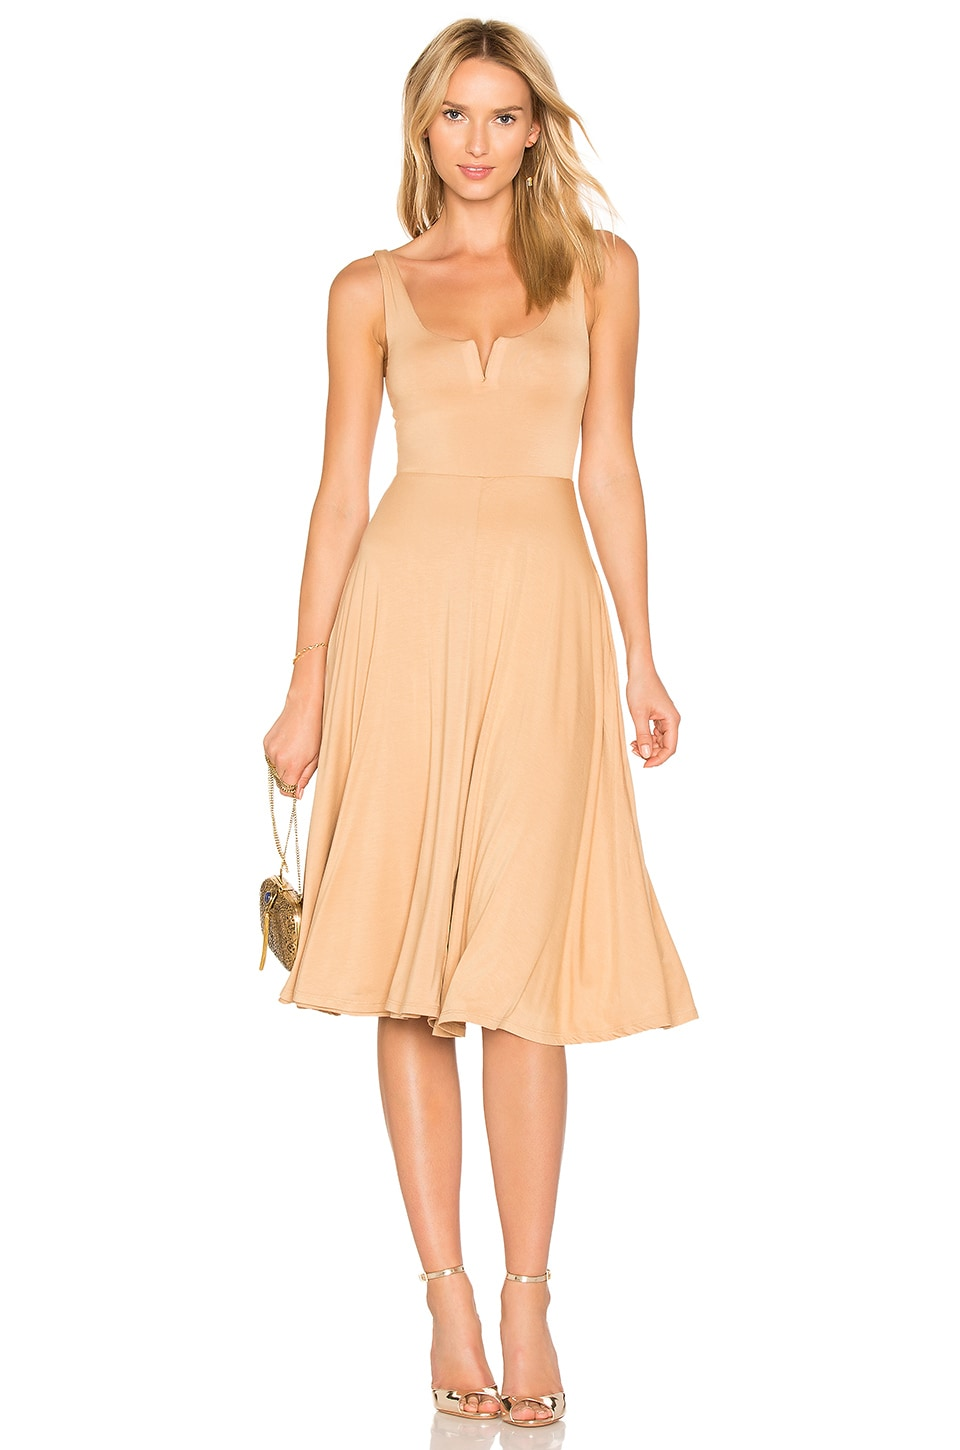 d0c43ff8c2a House of Harlow 1960 x REVOLVE Ella Dress in Almond